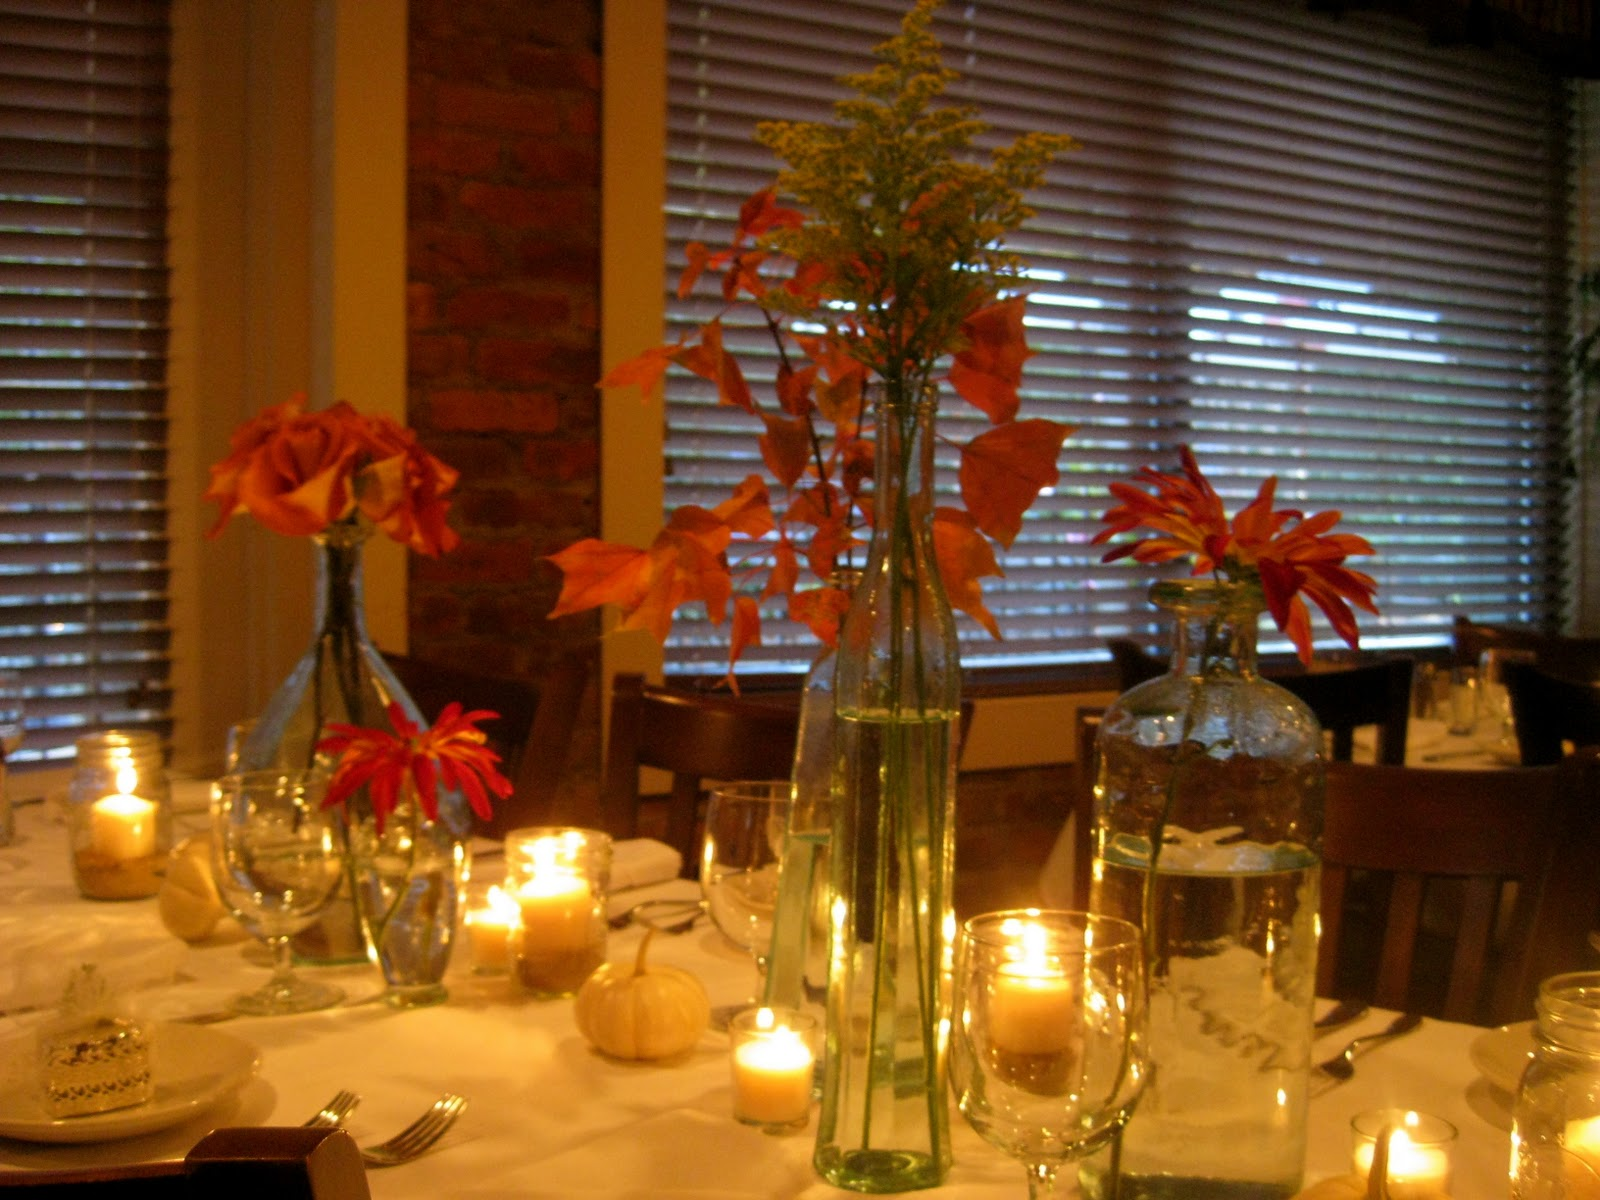 Remarkable Decorating Party Design Dining Table Decoration Ideas Southern By Design How To Decorate Your Thanksgiving Table